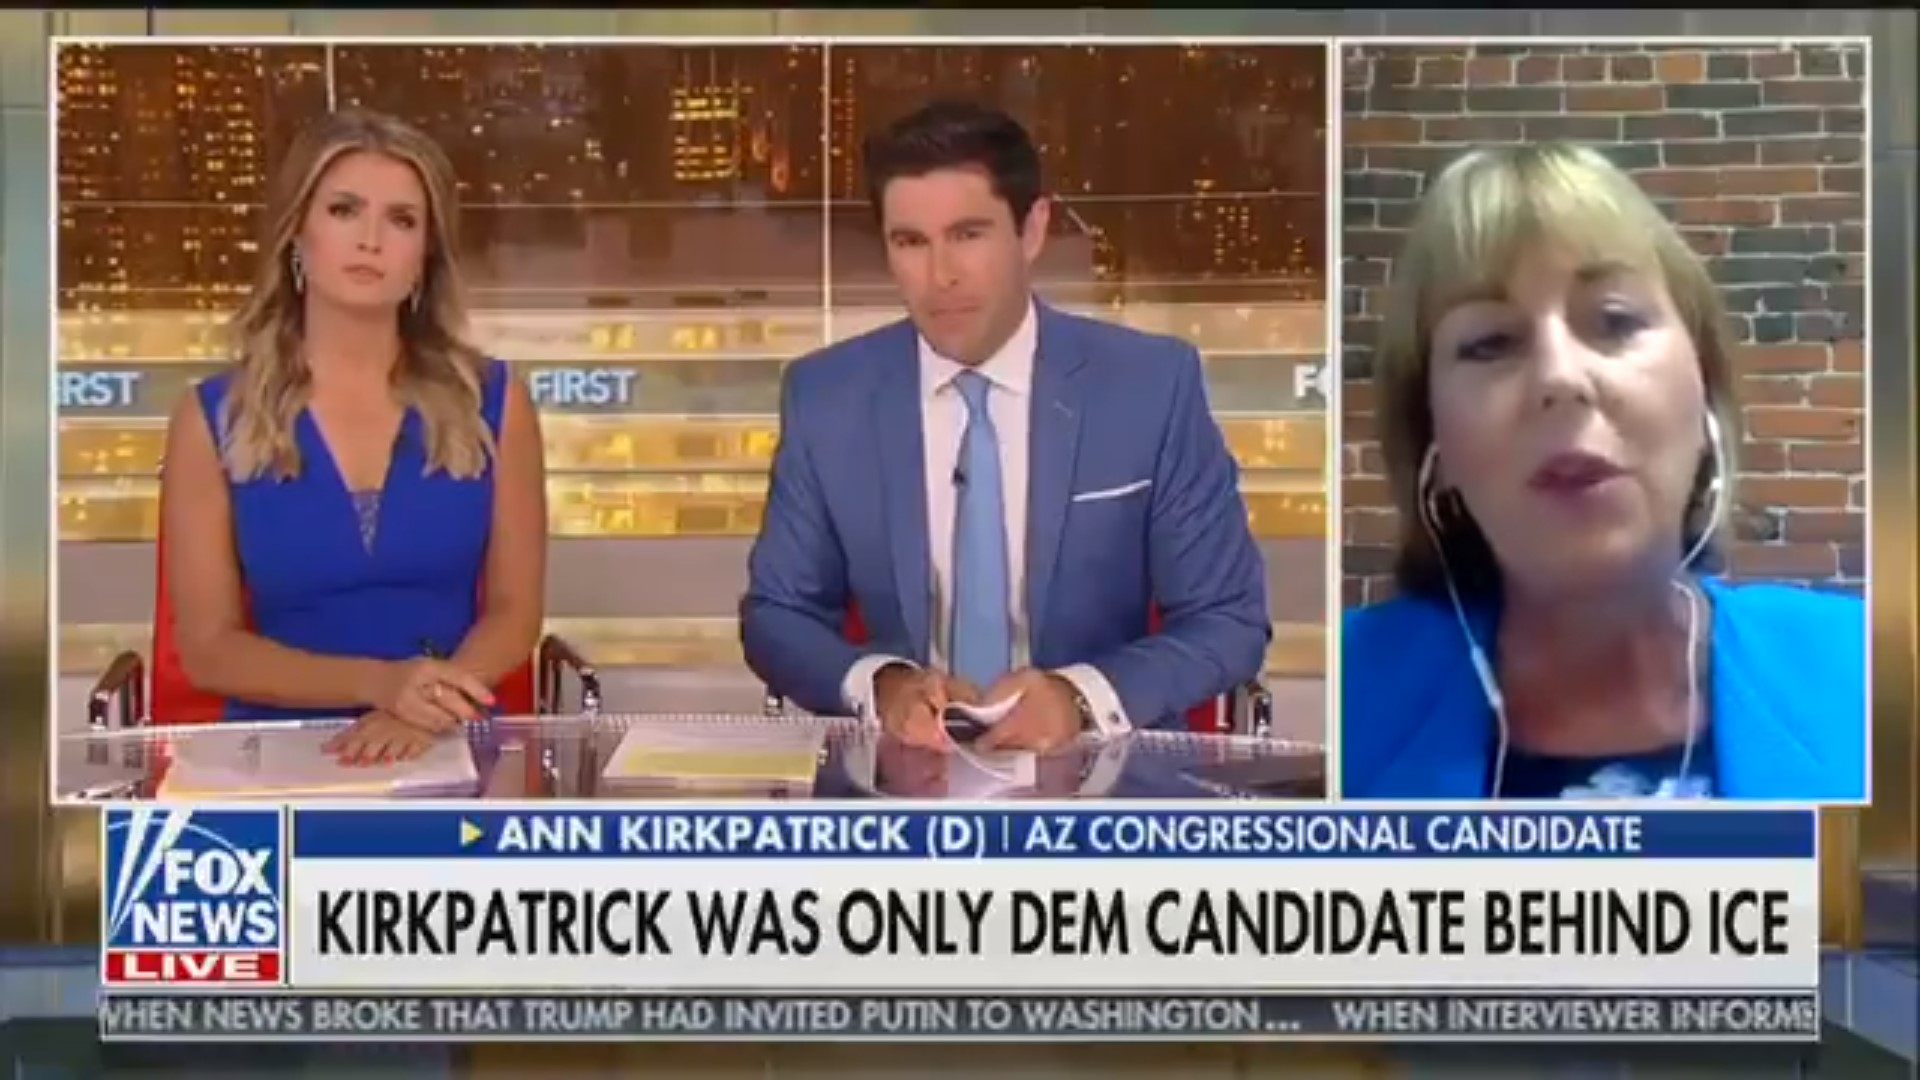 Fox News Thought They Booked Pro-ICE Democrat, Gets Fiery Anti-Trump Candidate Instead